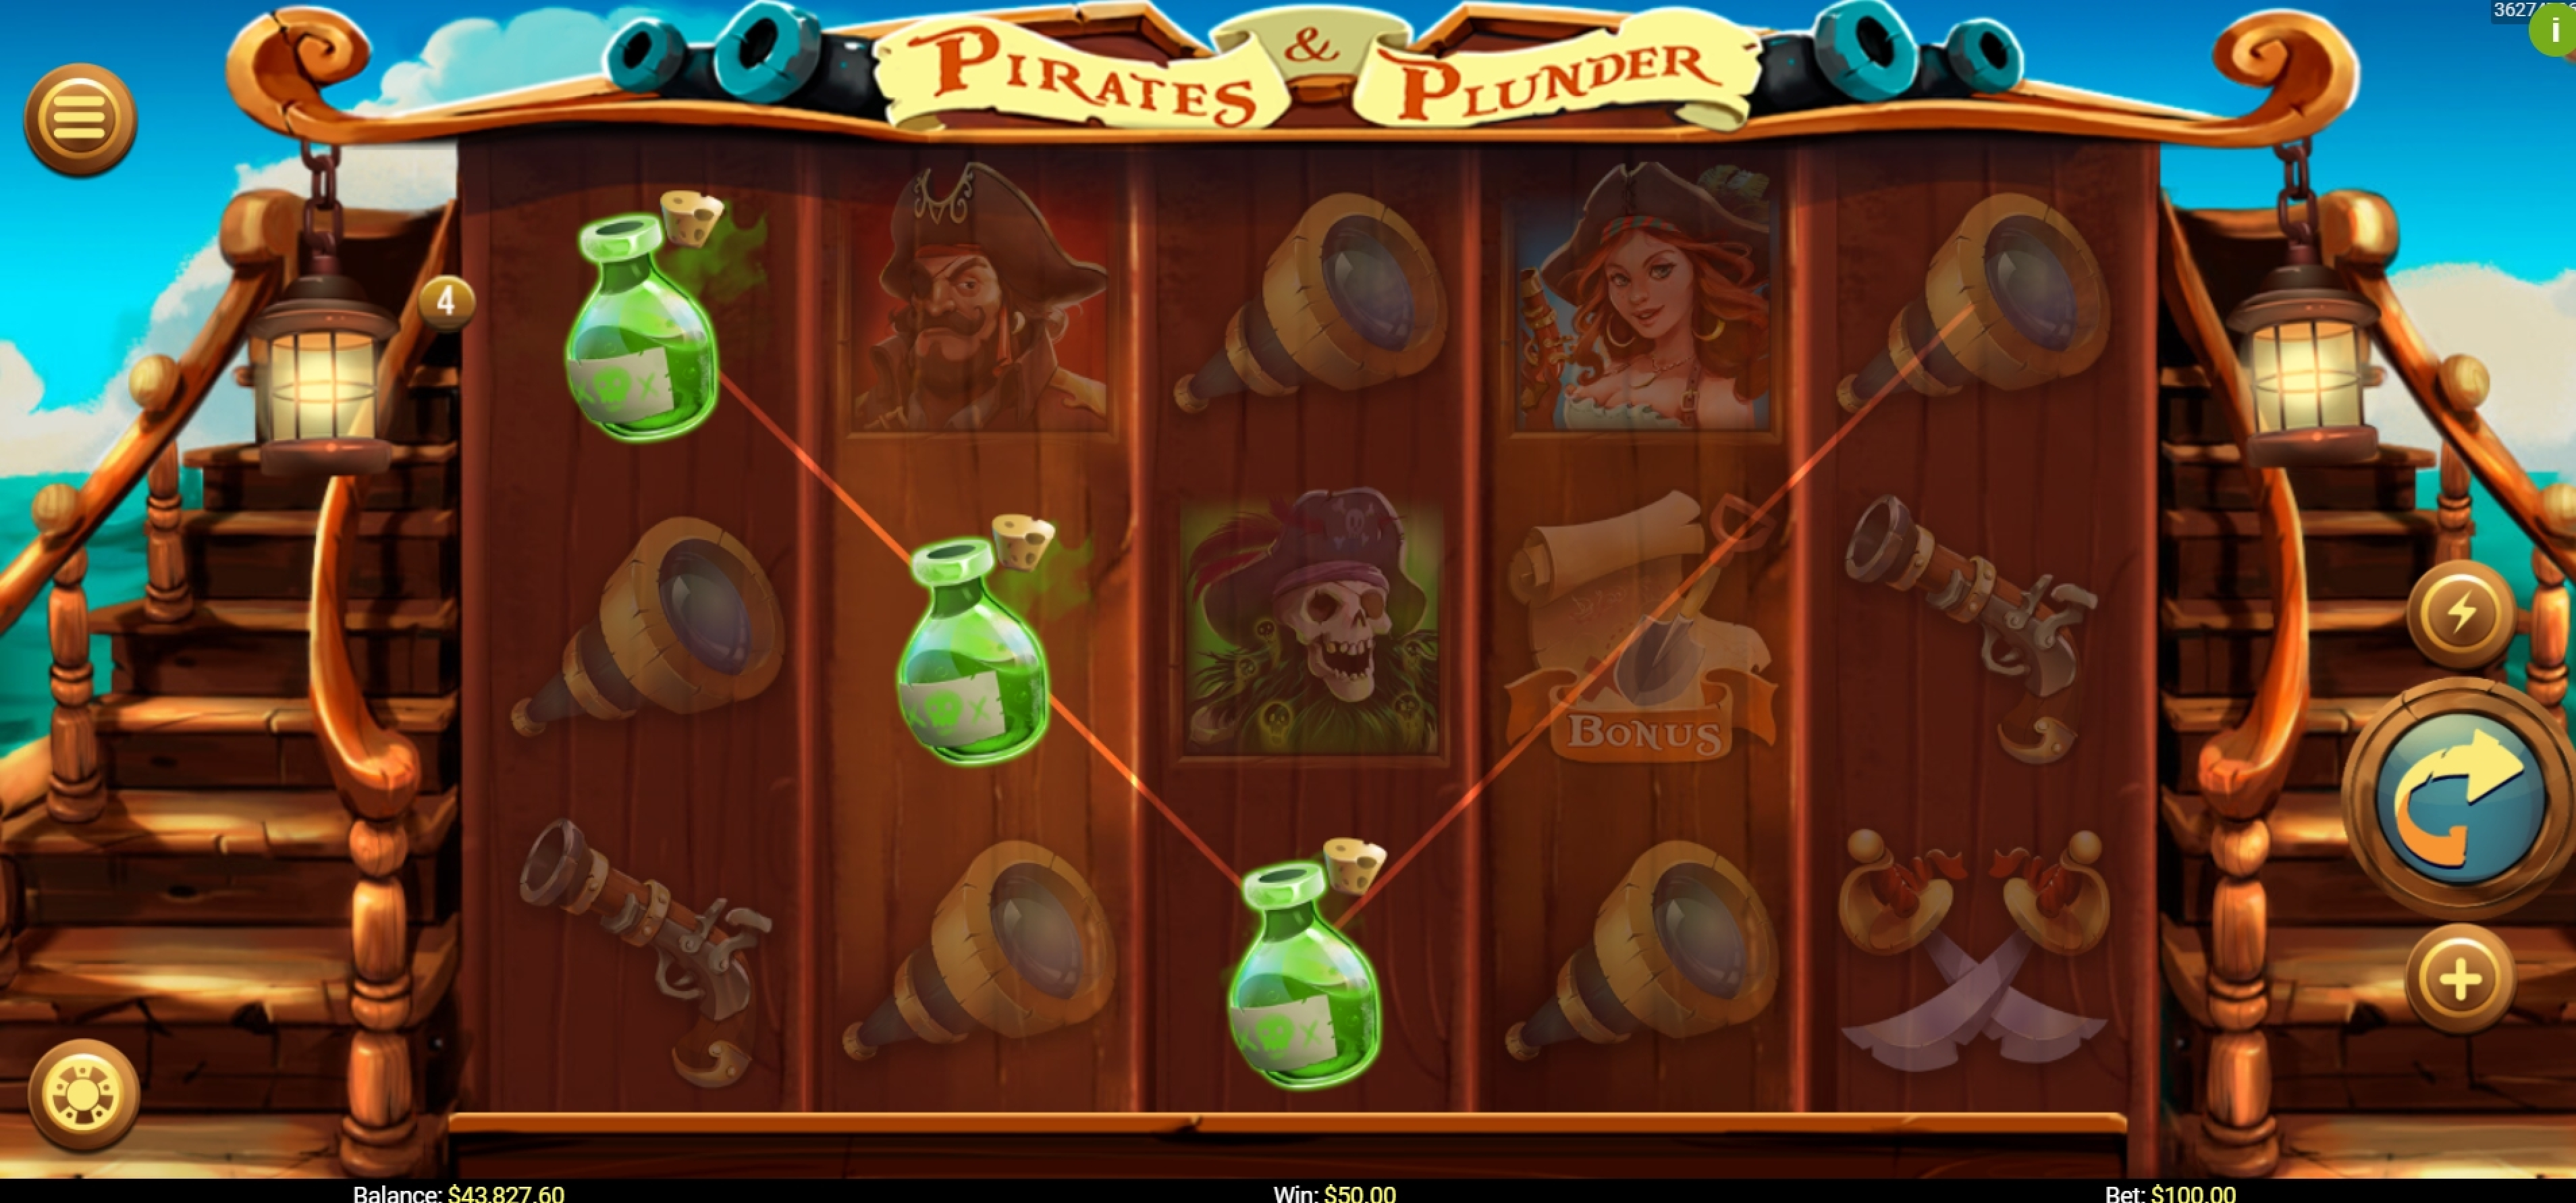 Win Money in Pirates and Plunder Free Slot Game by Mobilots